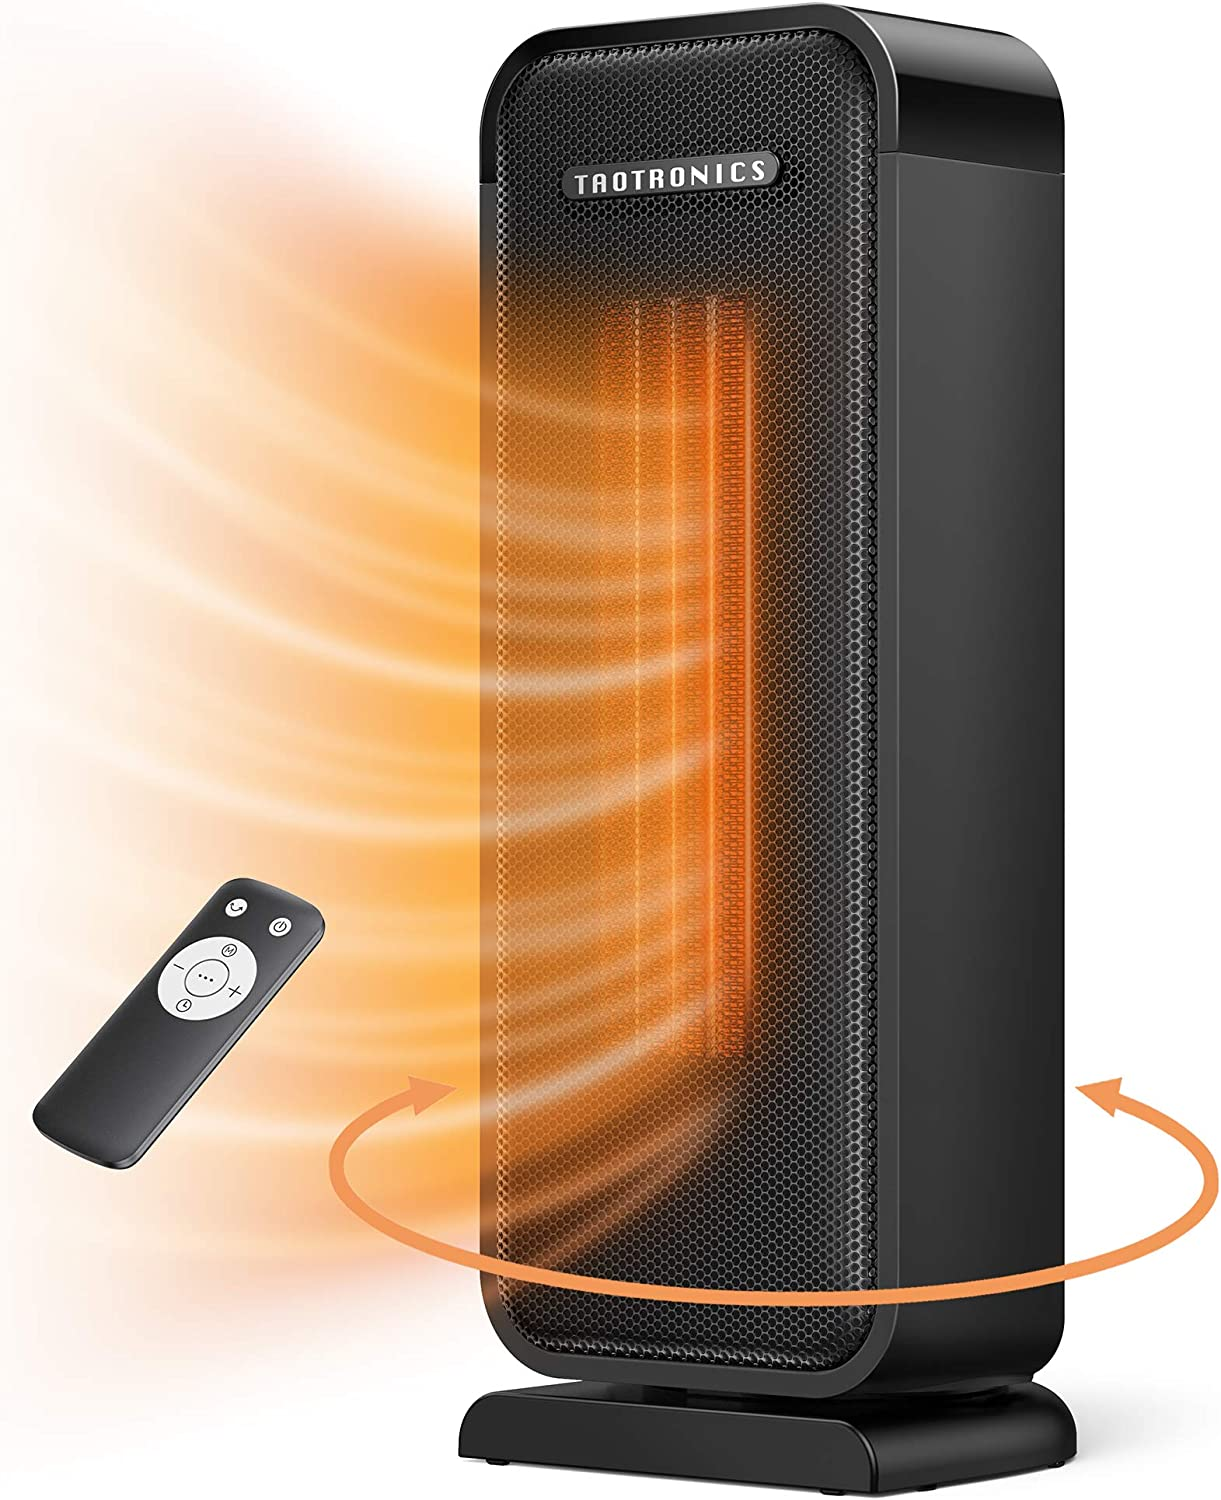 Taotronics TT-HE001 Space Heater, 1500W Electric Portable Fast Heating Widespread Oscillation ECO Mode 12 Hrs Timer with Remote Control for Indoor Use Home, Small, Black